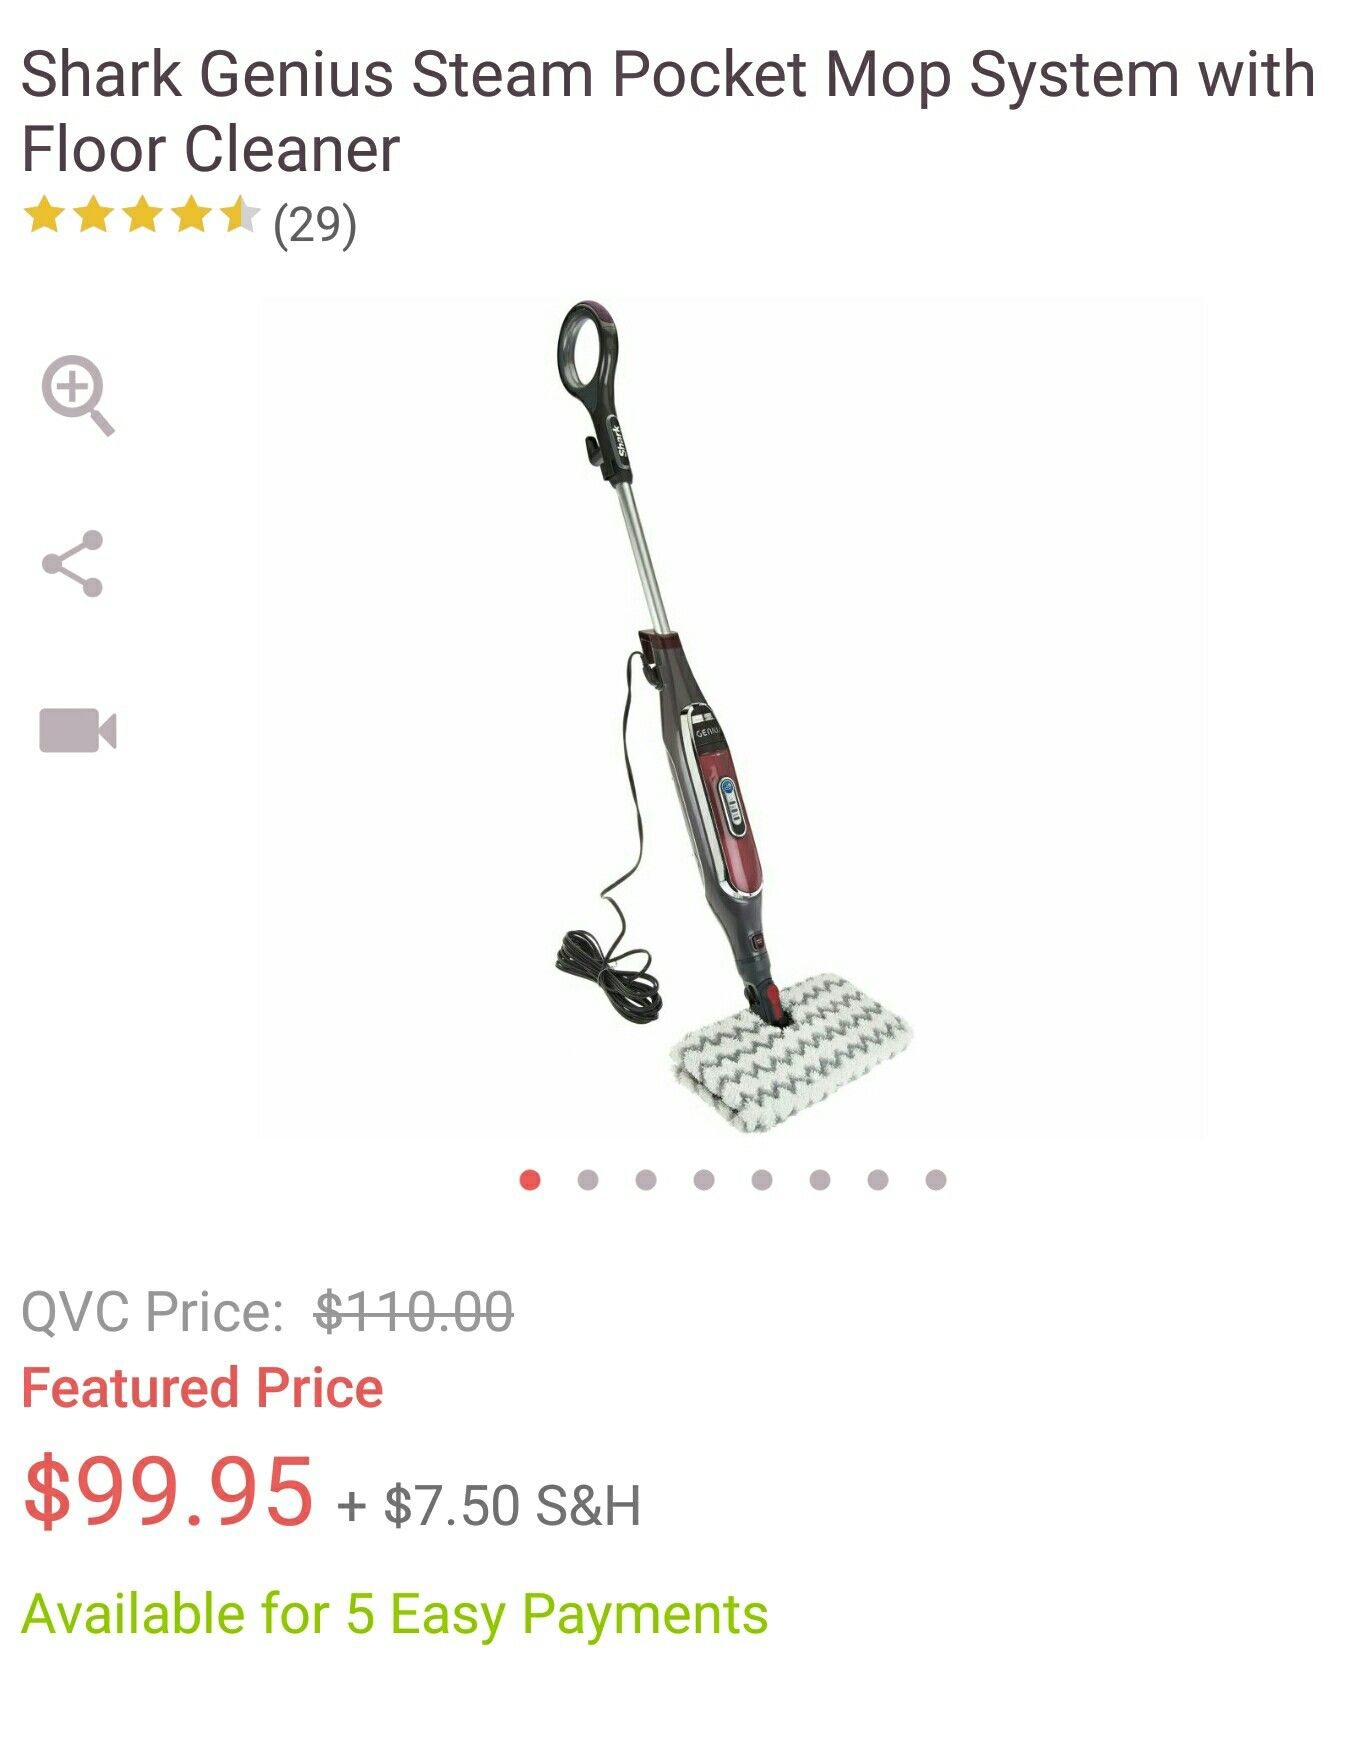 Shark Genius floor steam cleaner from the Q! photo credit